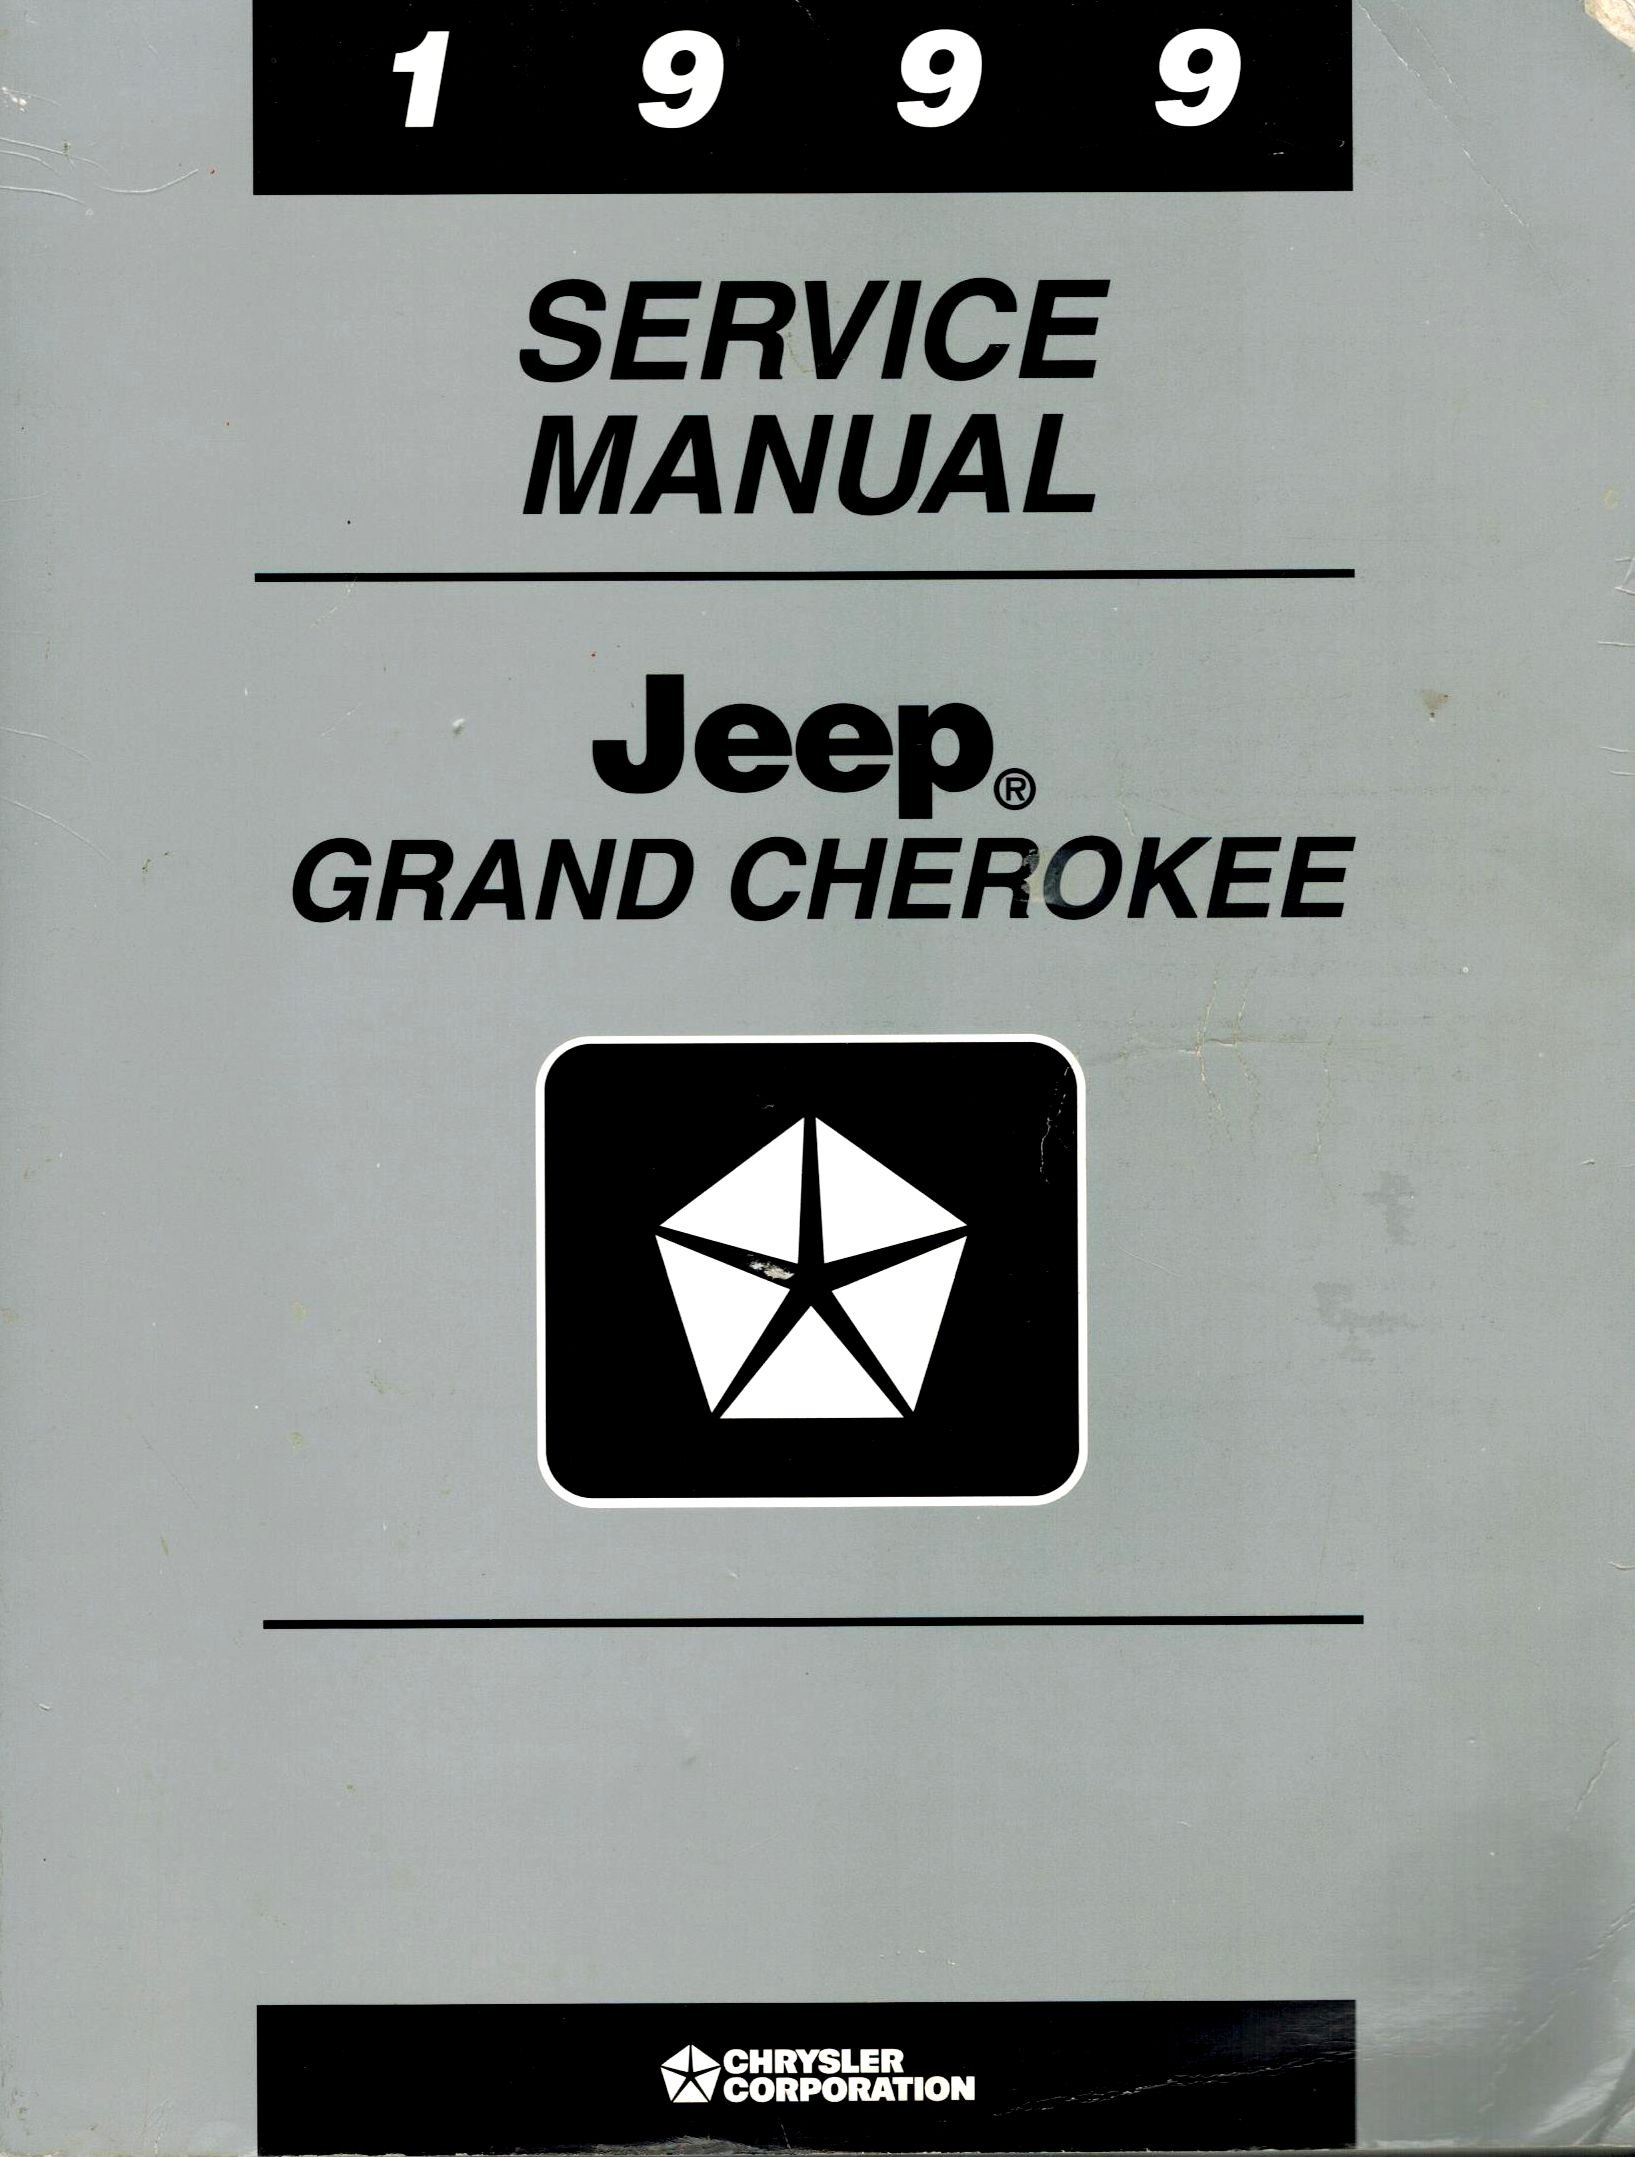 1999 Service Manual Jeep Grand Cherokee Paperback – 1998